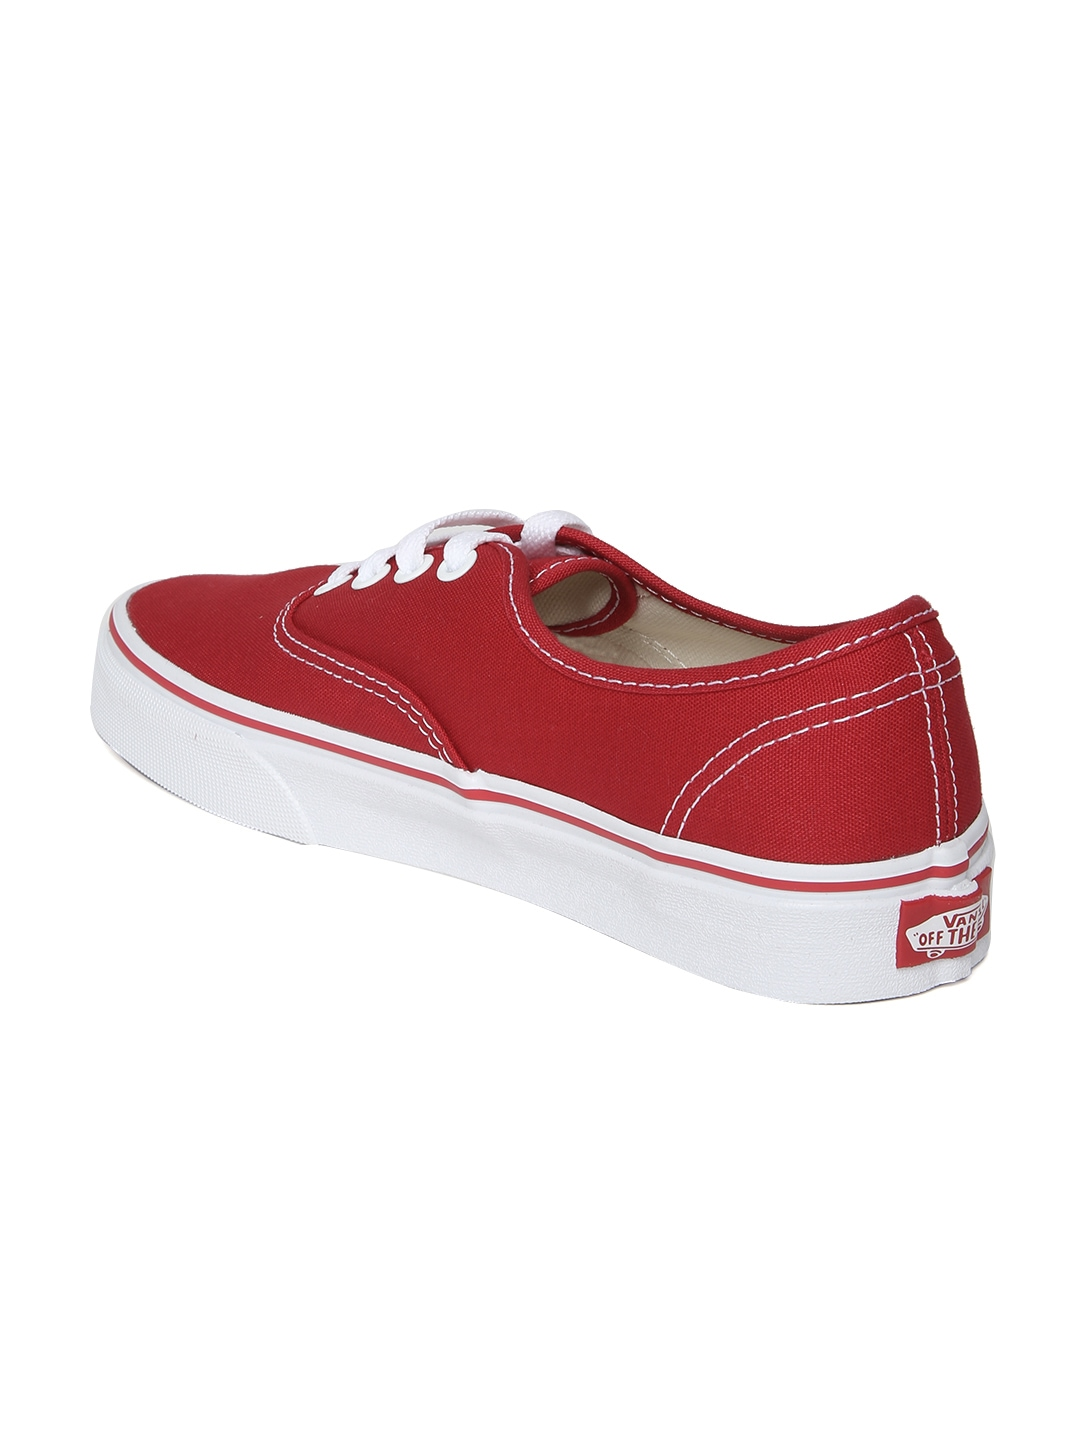 myntra vans unisex canvas shoes 870162 buy myntra